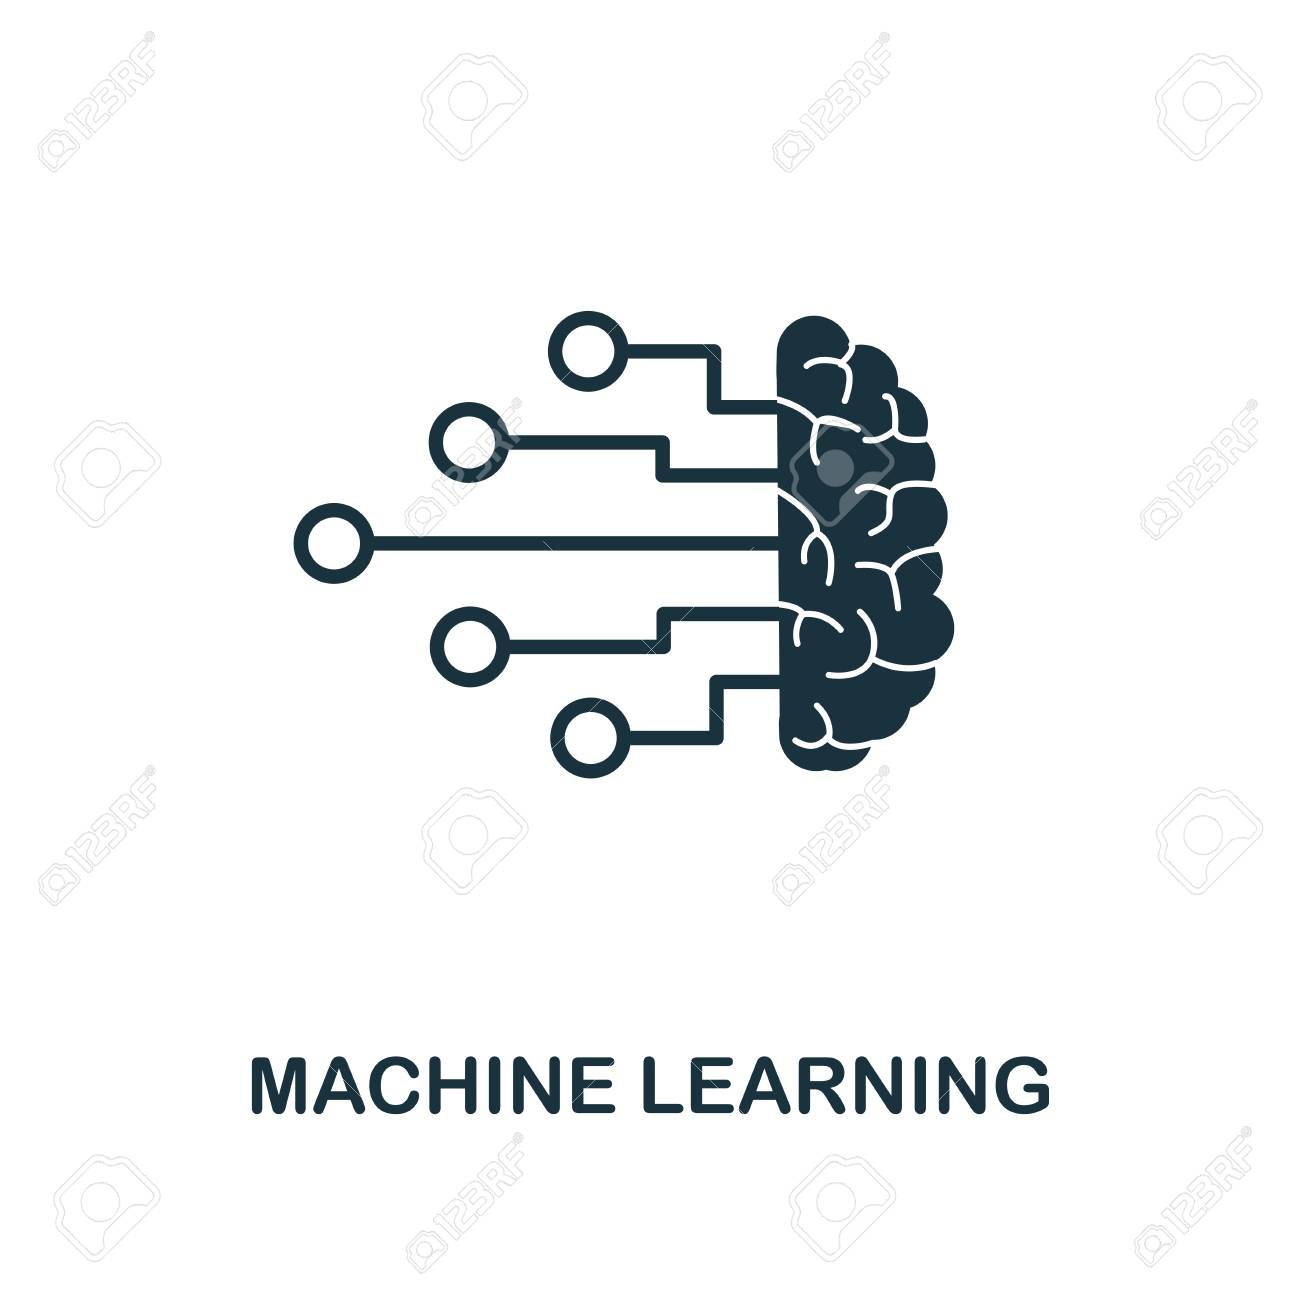 Machine Learning Icon Monochrome Style Design From Machine Learning